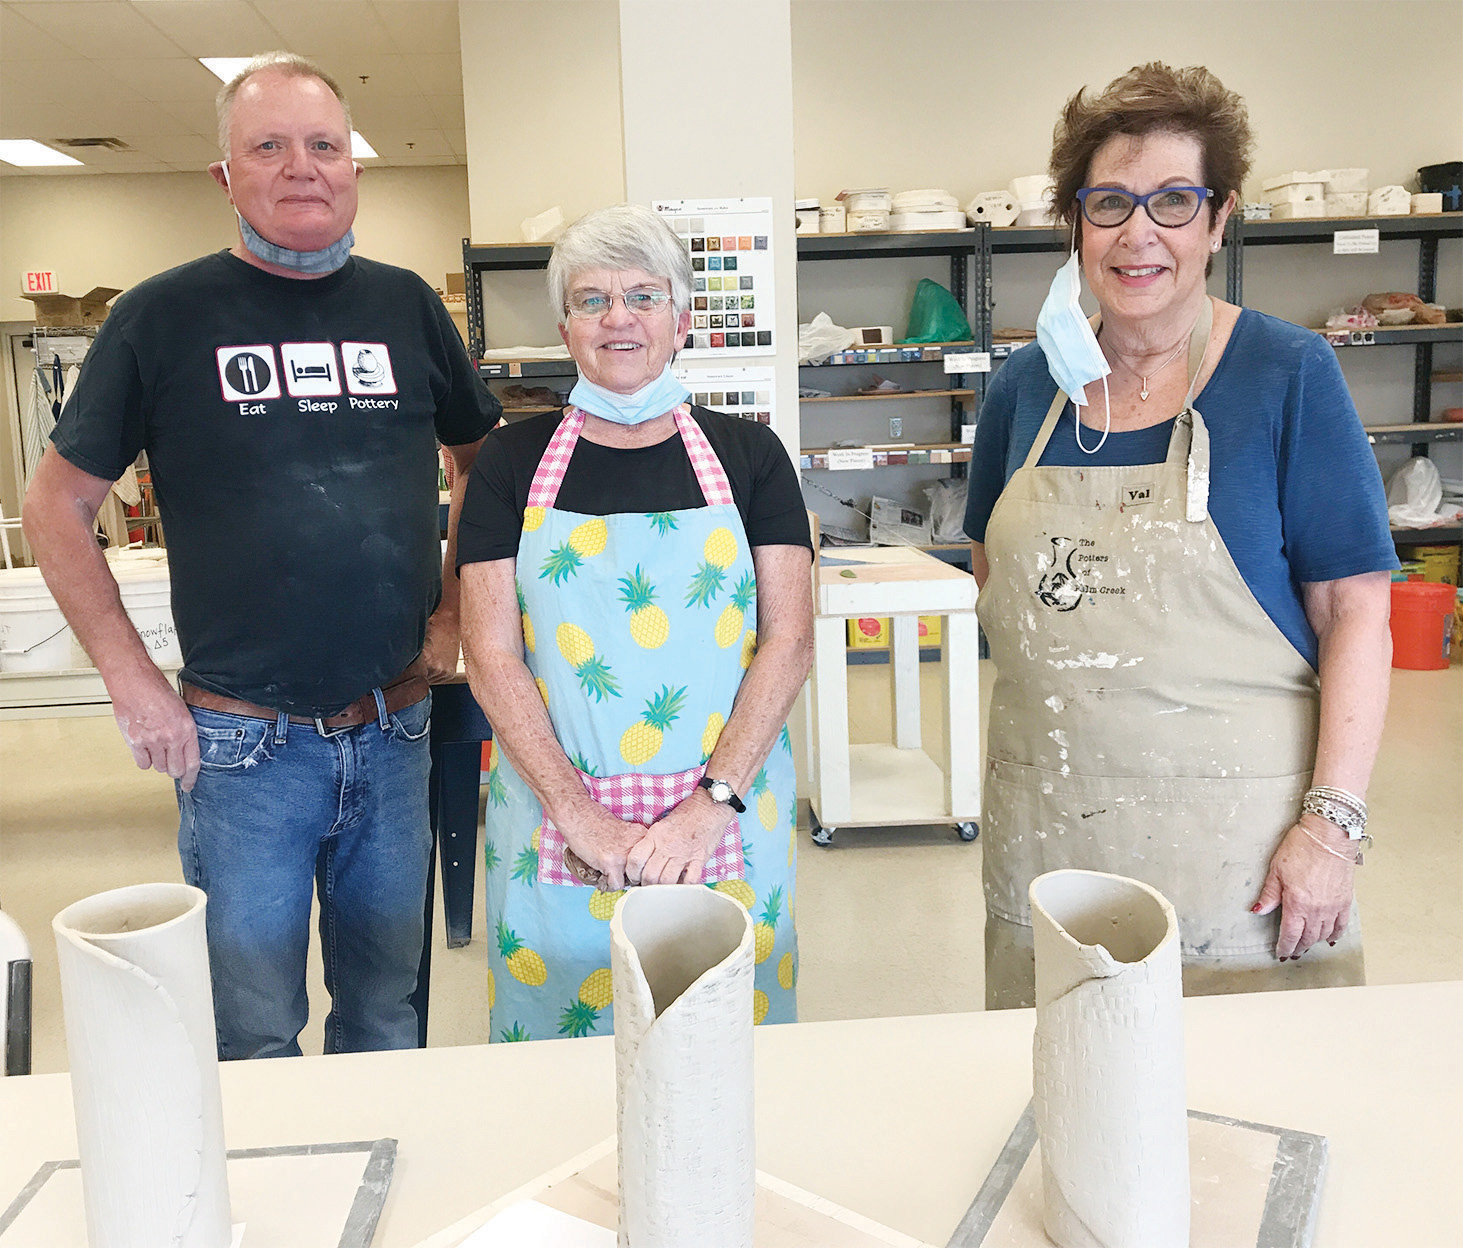 Warren Jensen, Diane Oster, Eeda Clow; Class 1: free formed their vase; Class 2: after firing in the kiln, the vase was cleaned and rough spots were sanded.